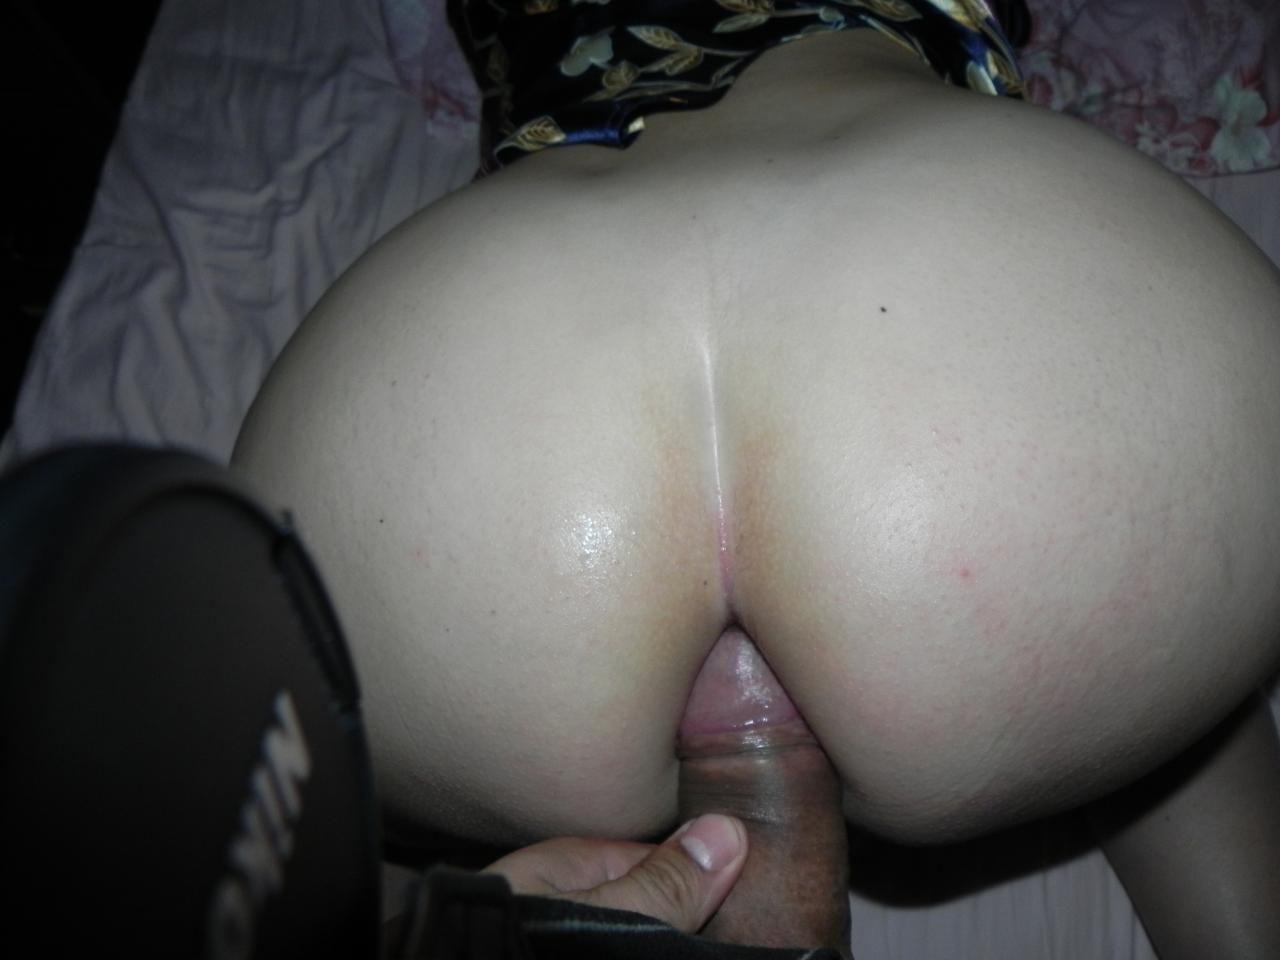 Picture with tags: Hardcore, Close-up, Interesting, Porn, Sex, Amateur, Anal, Ass, Point of view